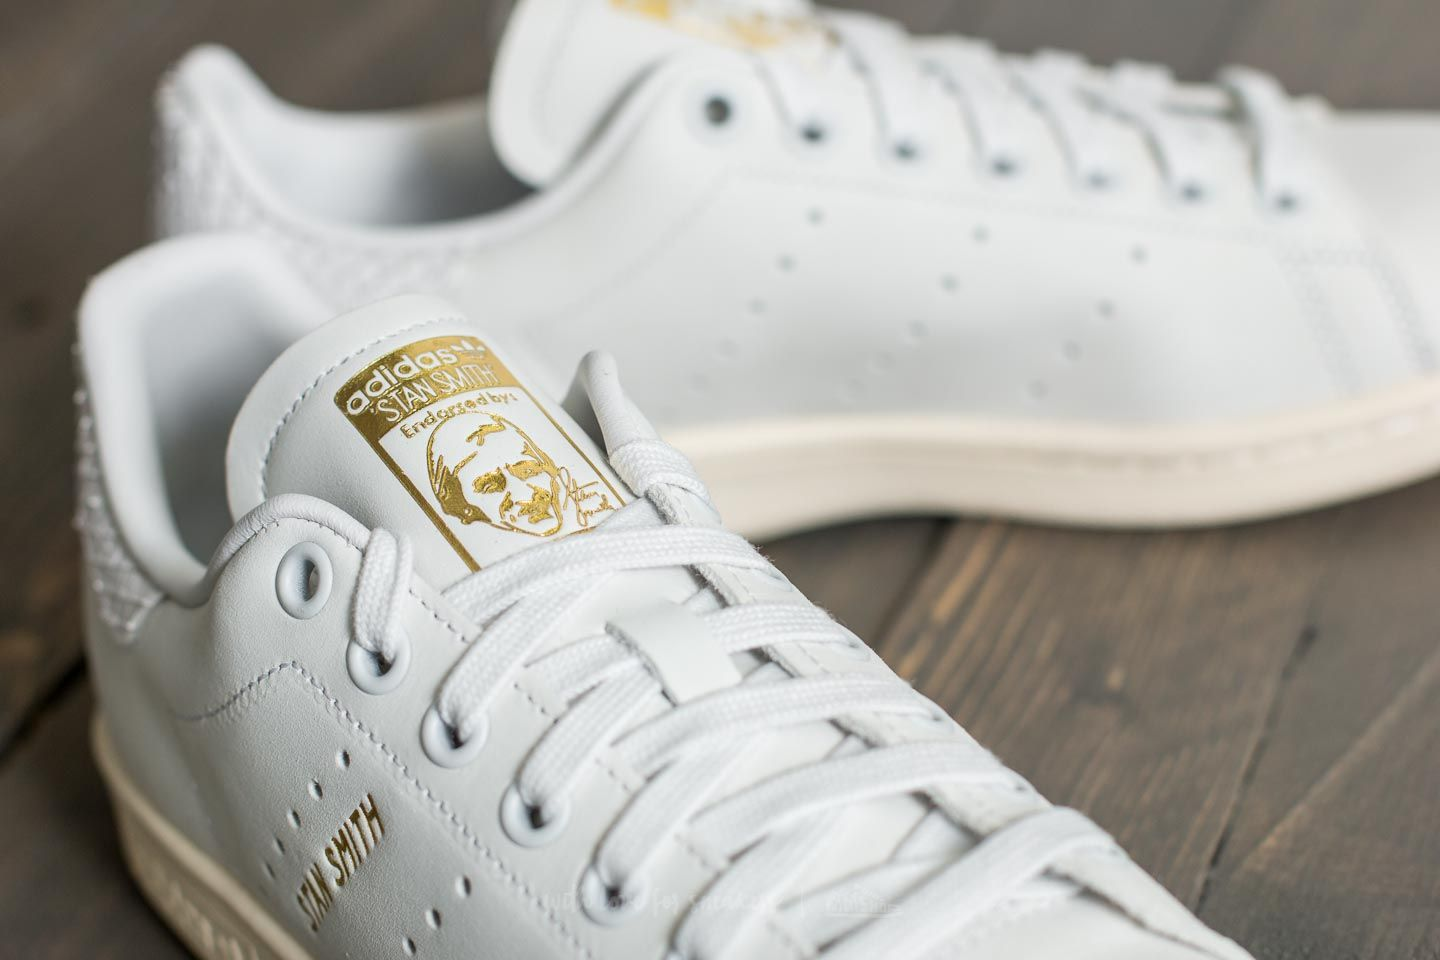 Adidas Stan Smith W Supplier Colour Gold Metalic At A Great Price